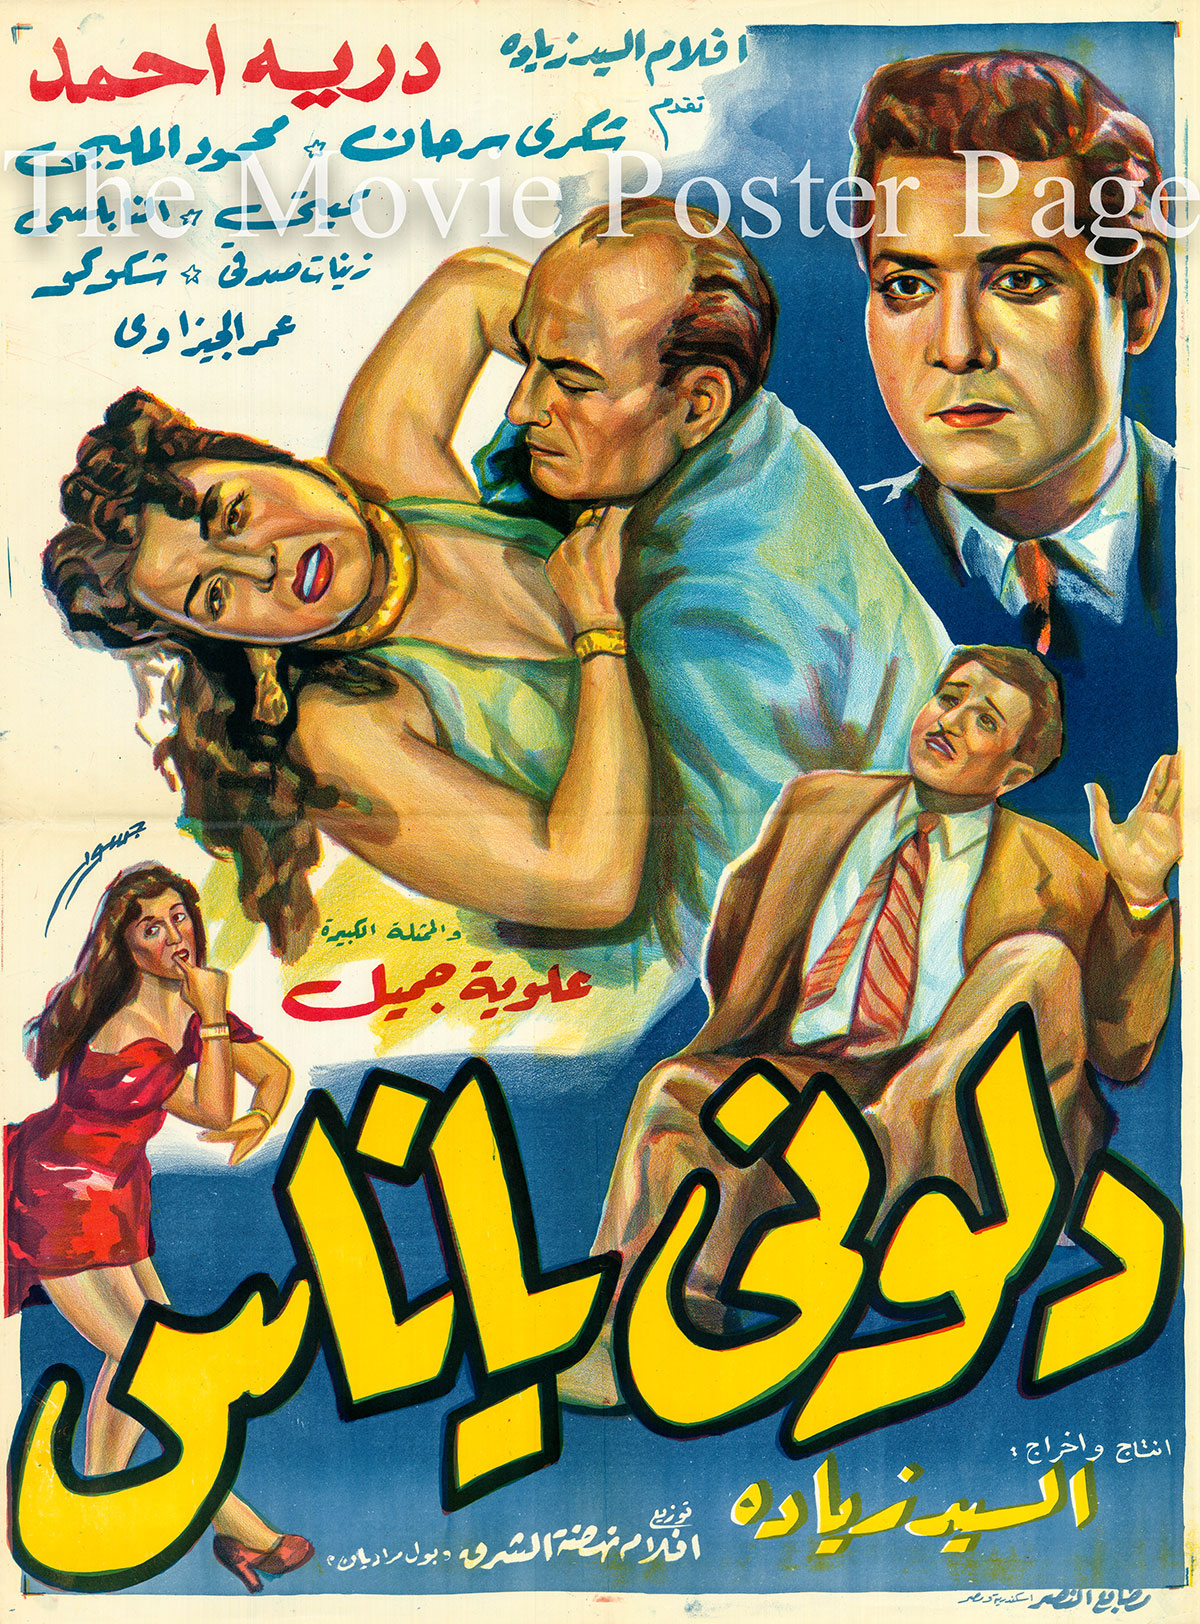 Pictured is an Egyptian promotional program for the 1954 El-Sayed Ziada film Show Me the Way People starring Doria Ahmed.